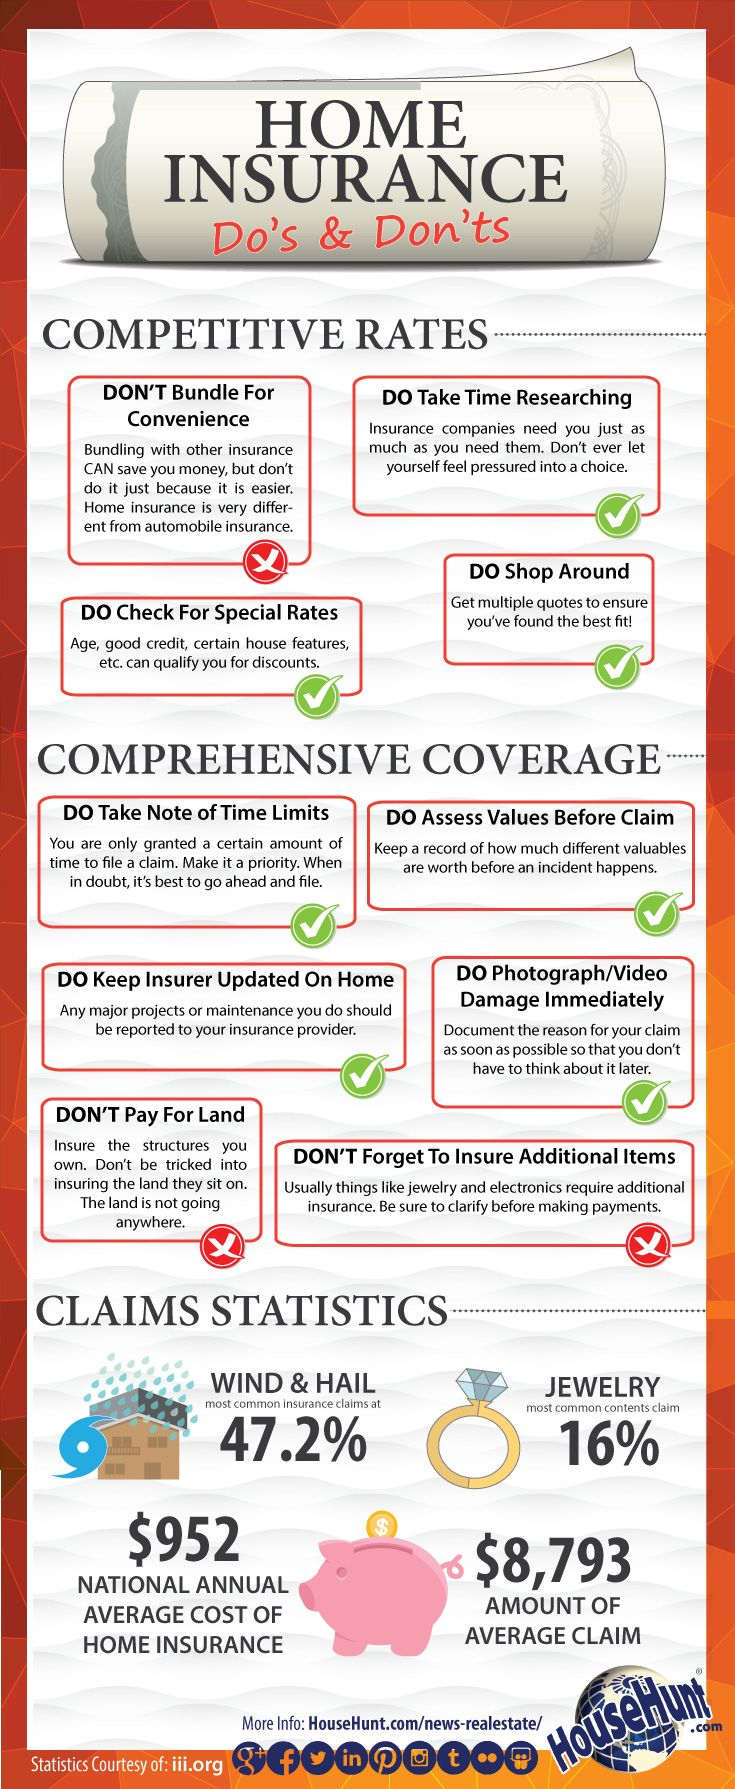 home insurance do's and don'ts [infographic]